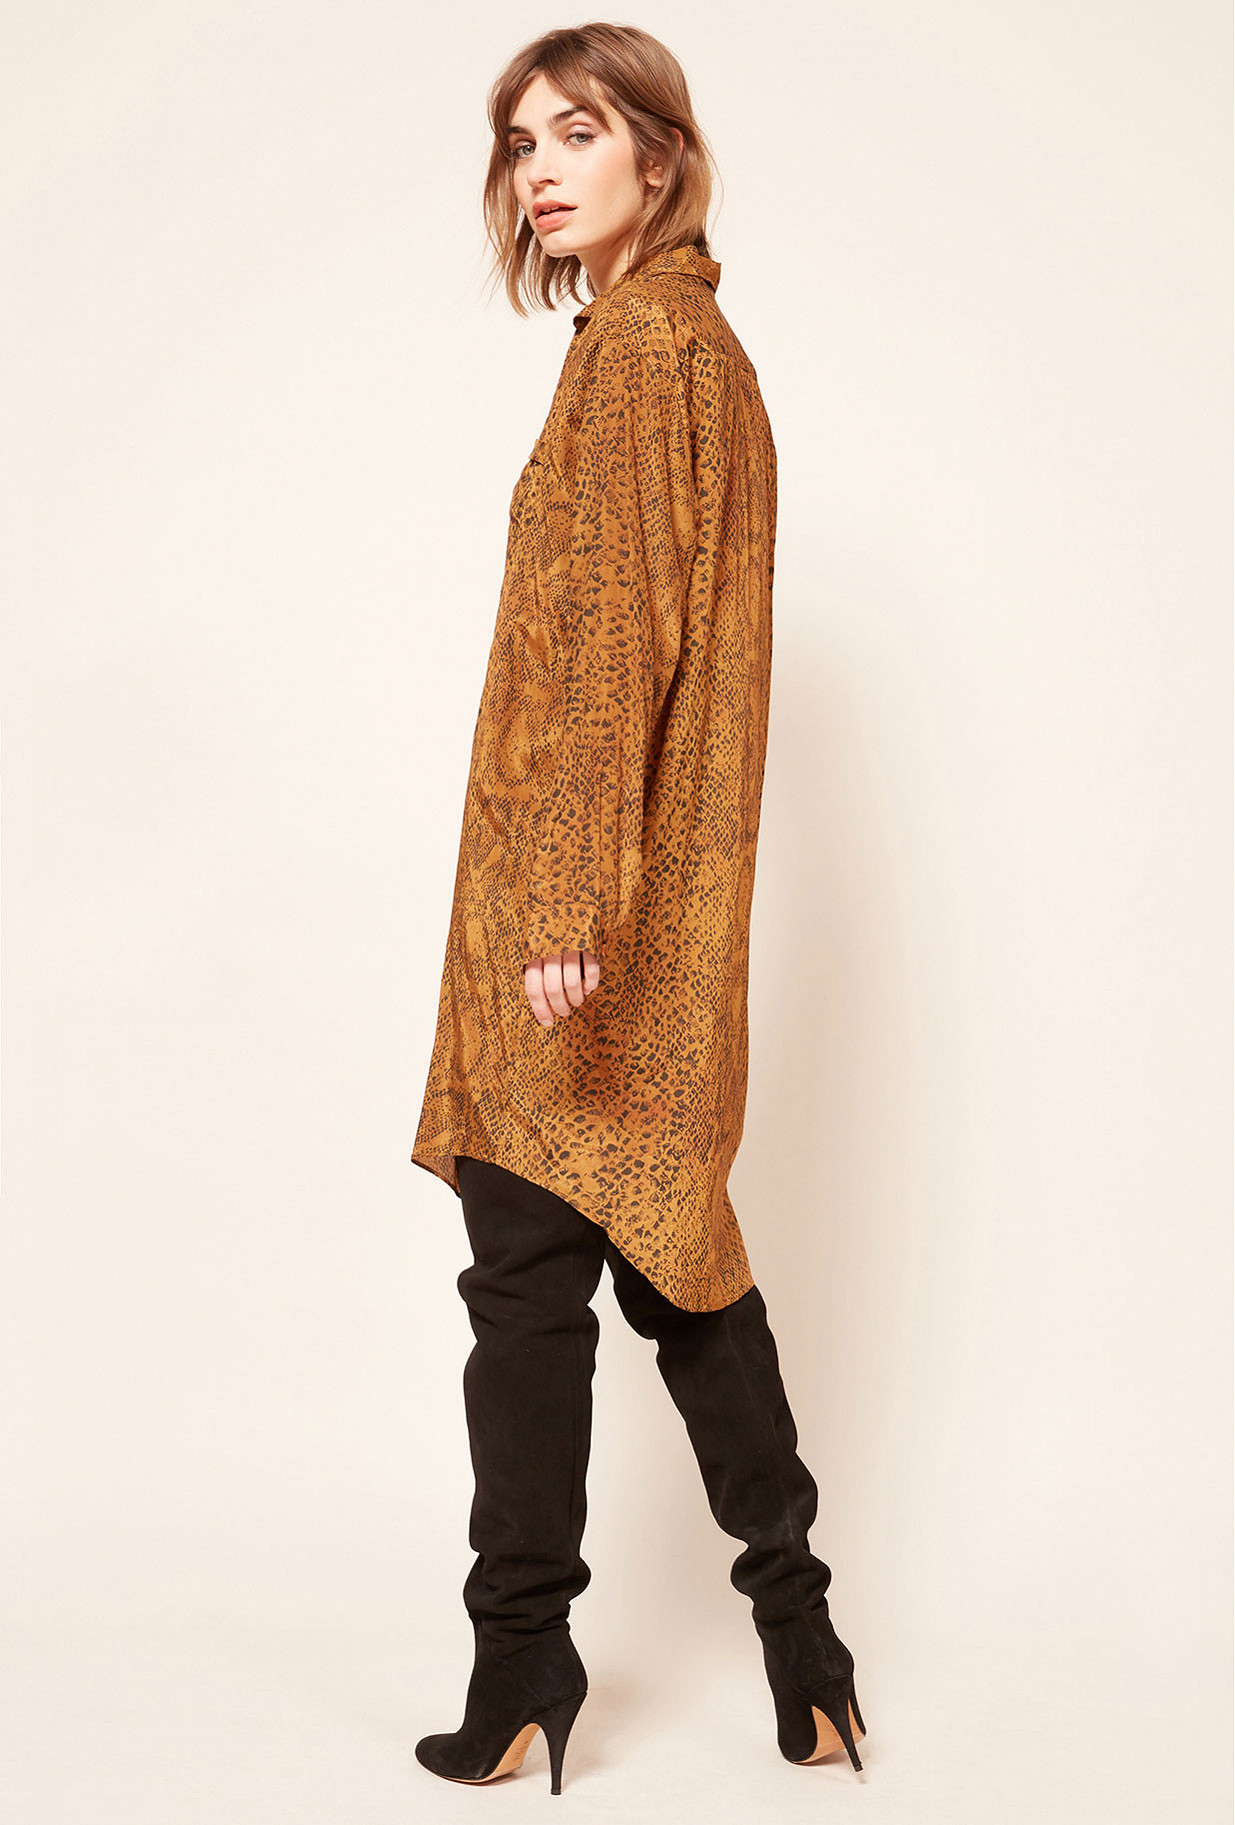 Ocre print  Shirt  Kaa Mes demoiselles fashion clothes designer Paris